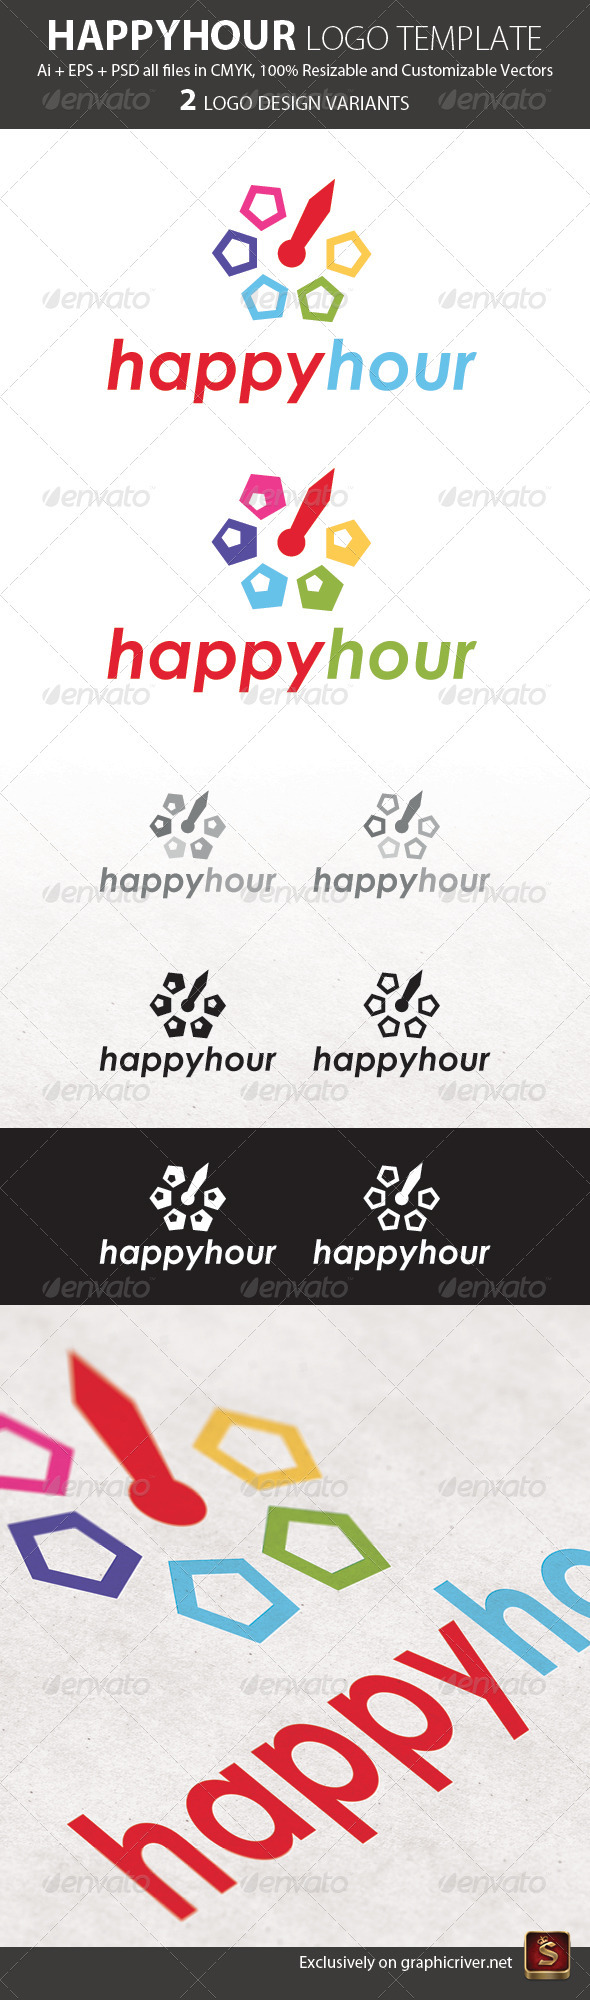 Happy Hour Logo Template - Abstract Logo Templates